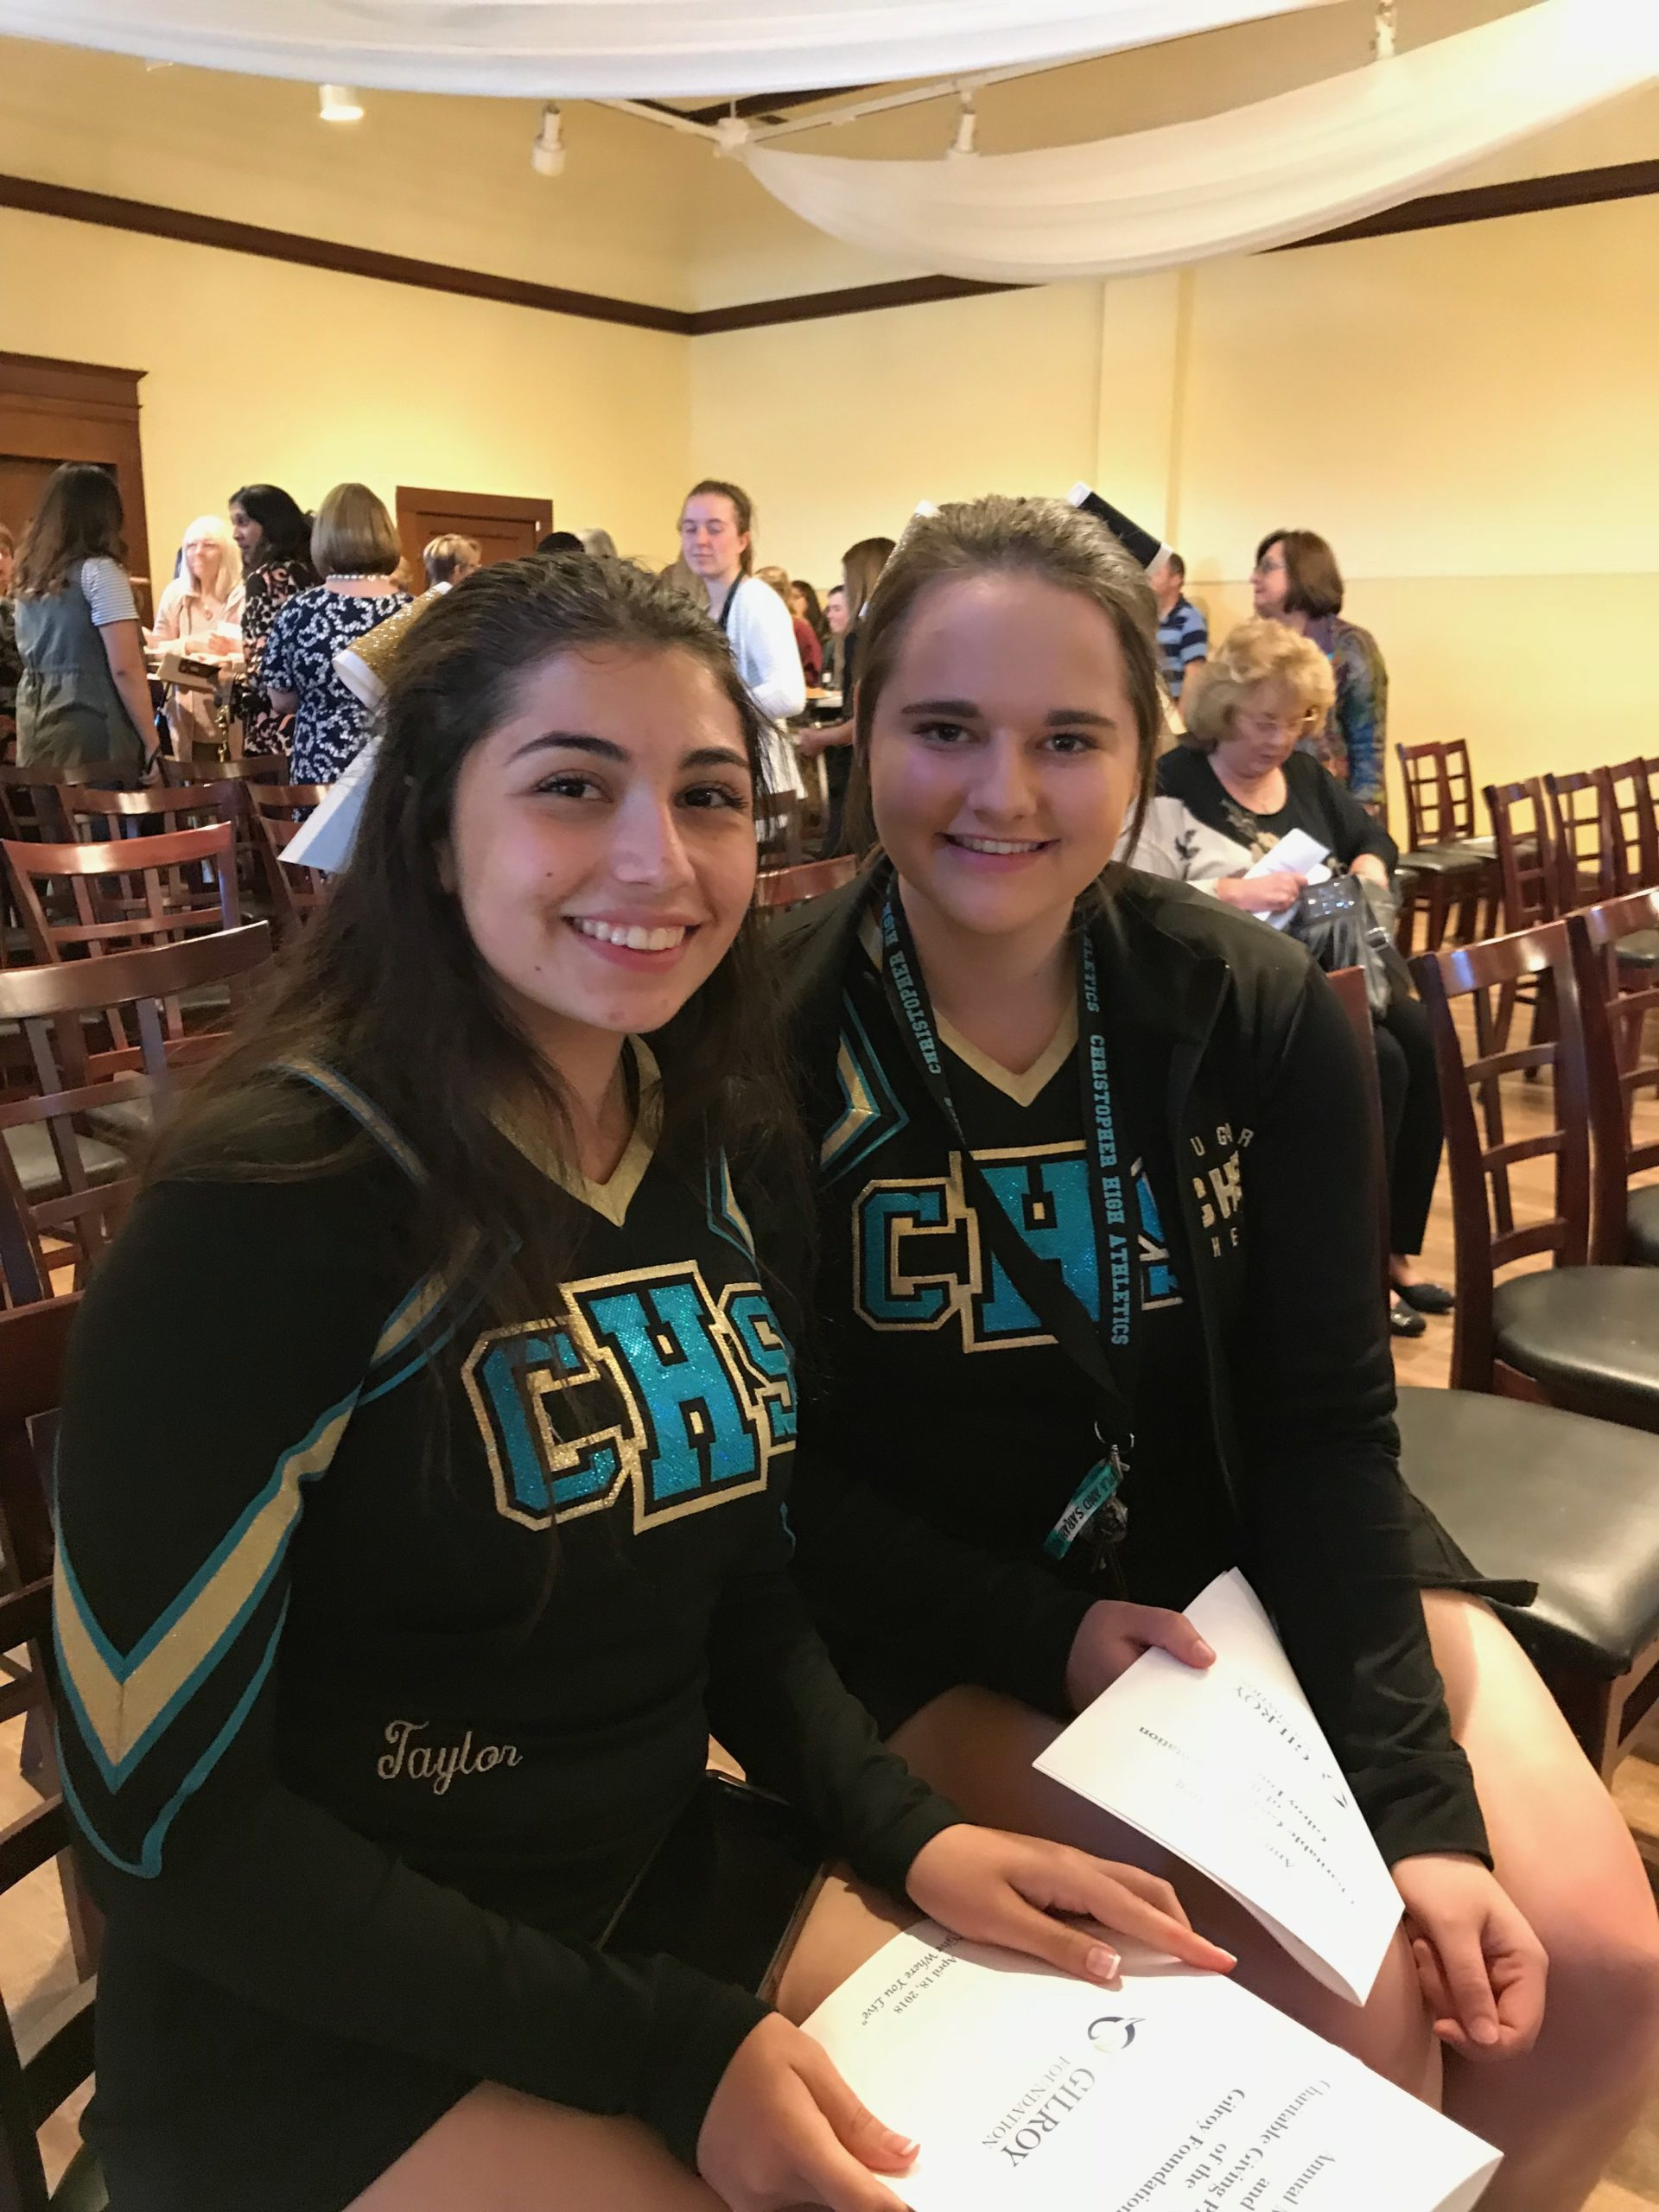 Photo of two Christopher High School Cheerleaders at the 2018 Annual Meeting and Charitable Giving Presentation